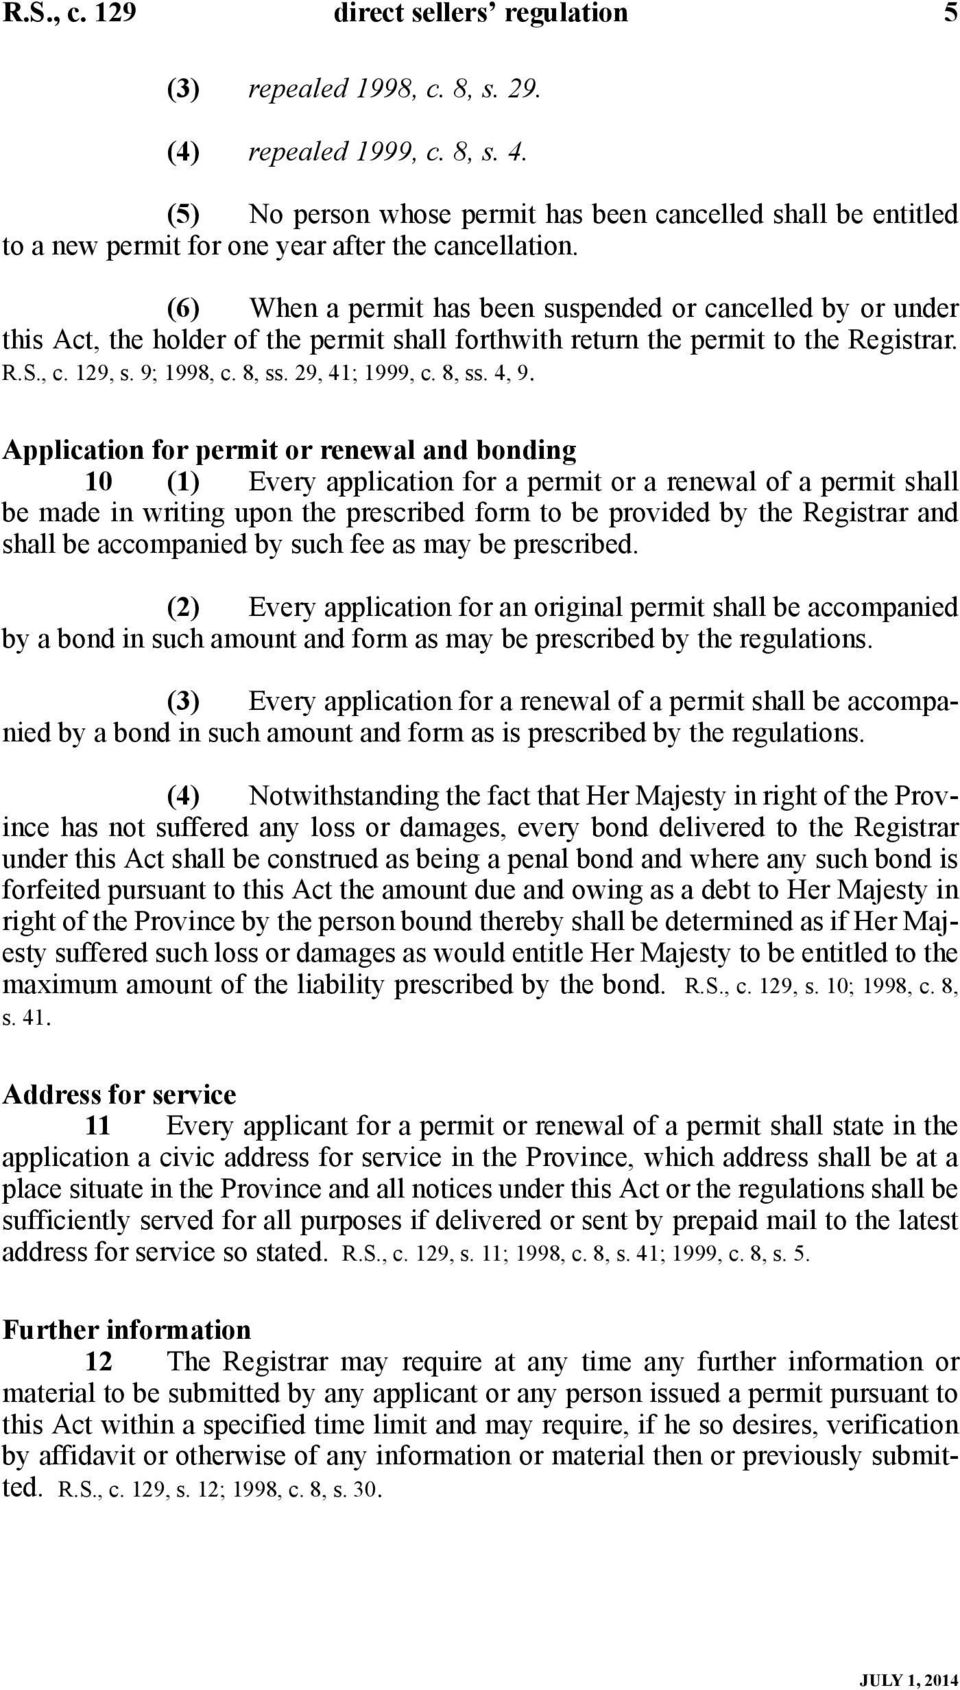 (6) When a permit has been suspended or cancelled by or under this Act, the holder of the permit shall forthwith return the permit to the Registrar. R.S., c. 129, s. 9; 1998, c. 8, ss.